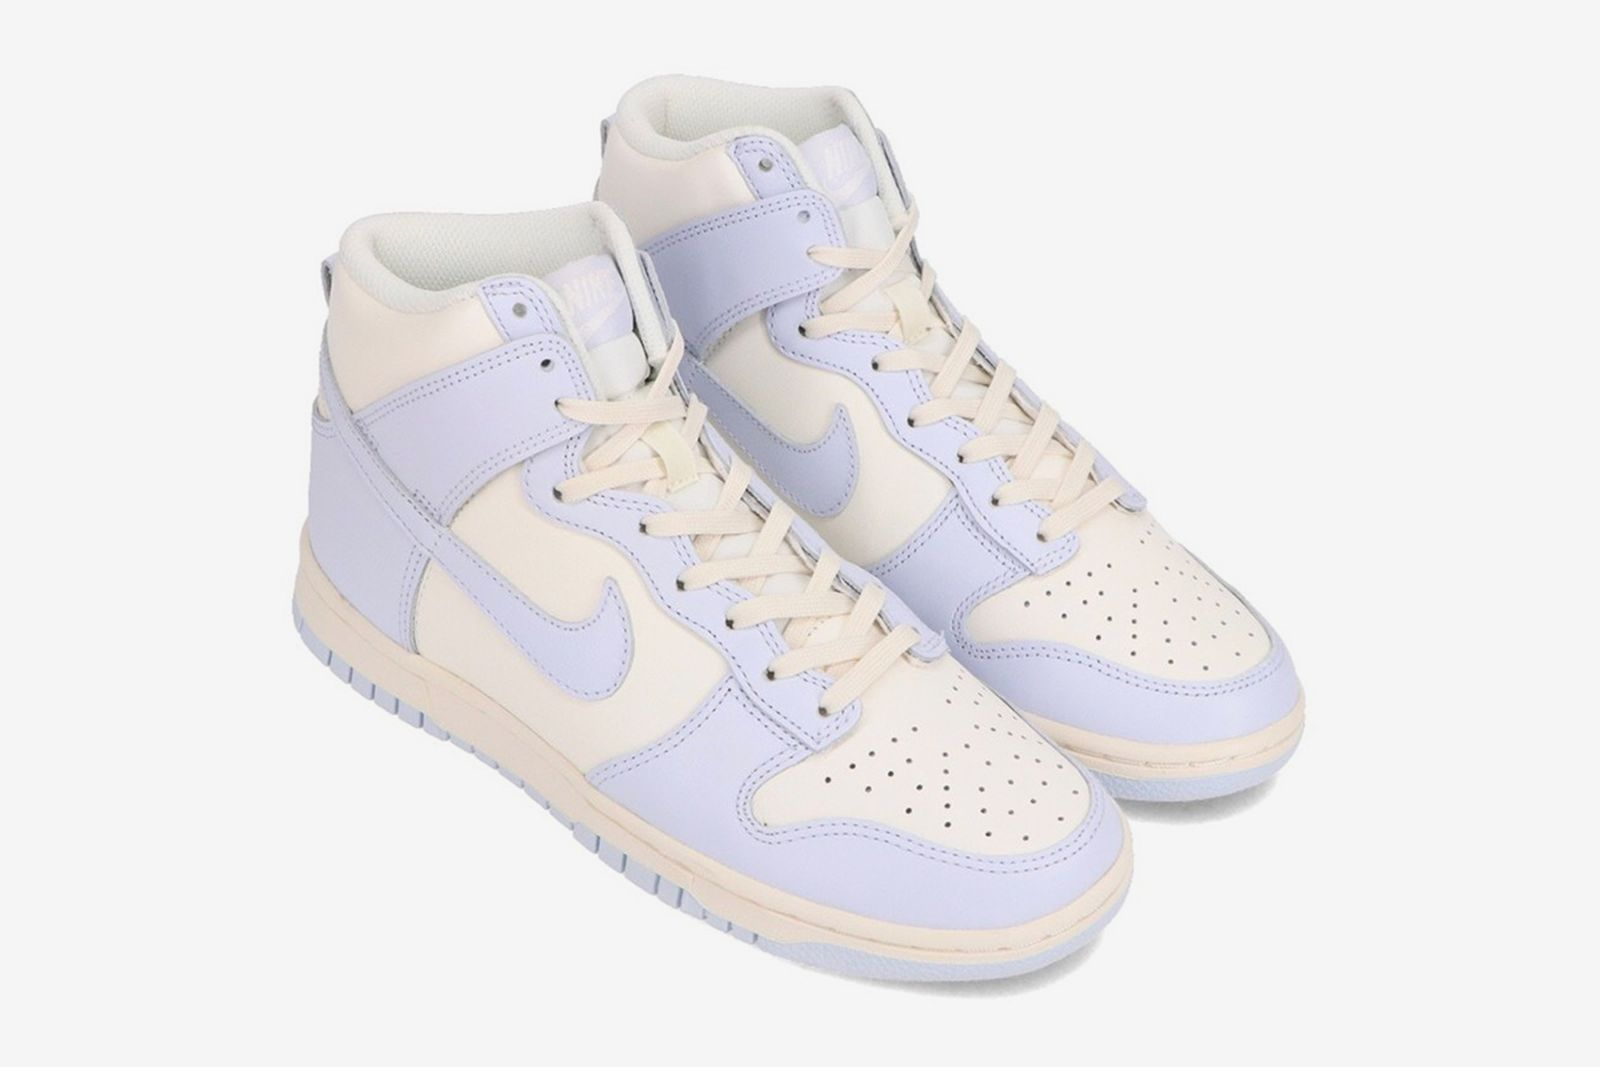 nike-dunks-january-2021-release-date-price-22